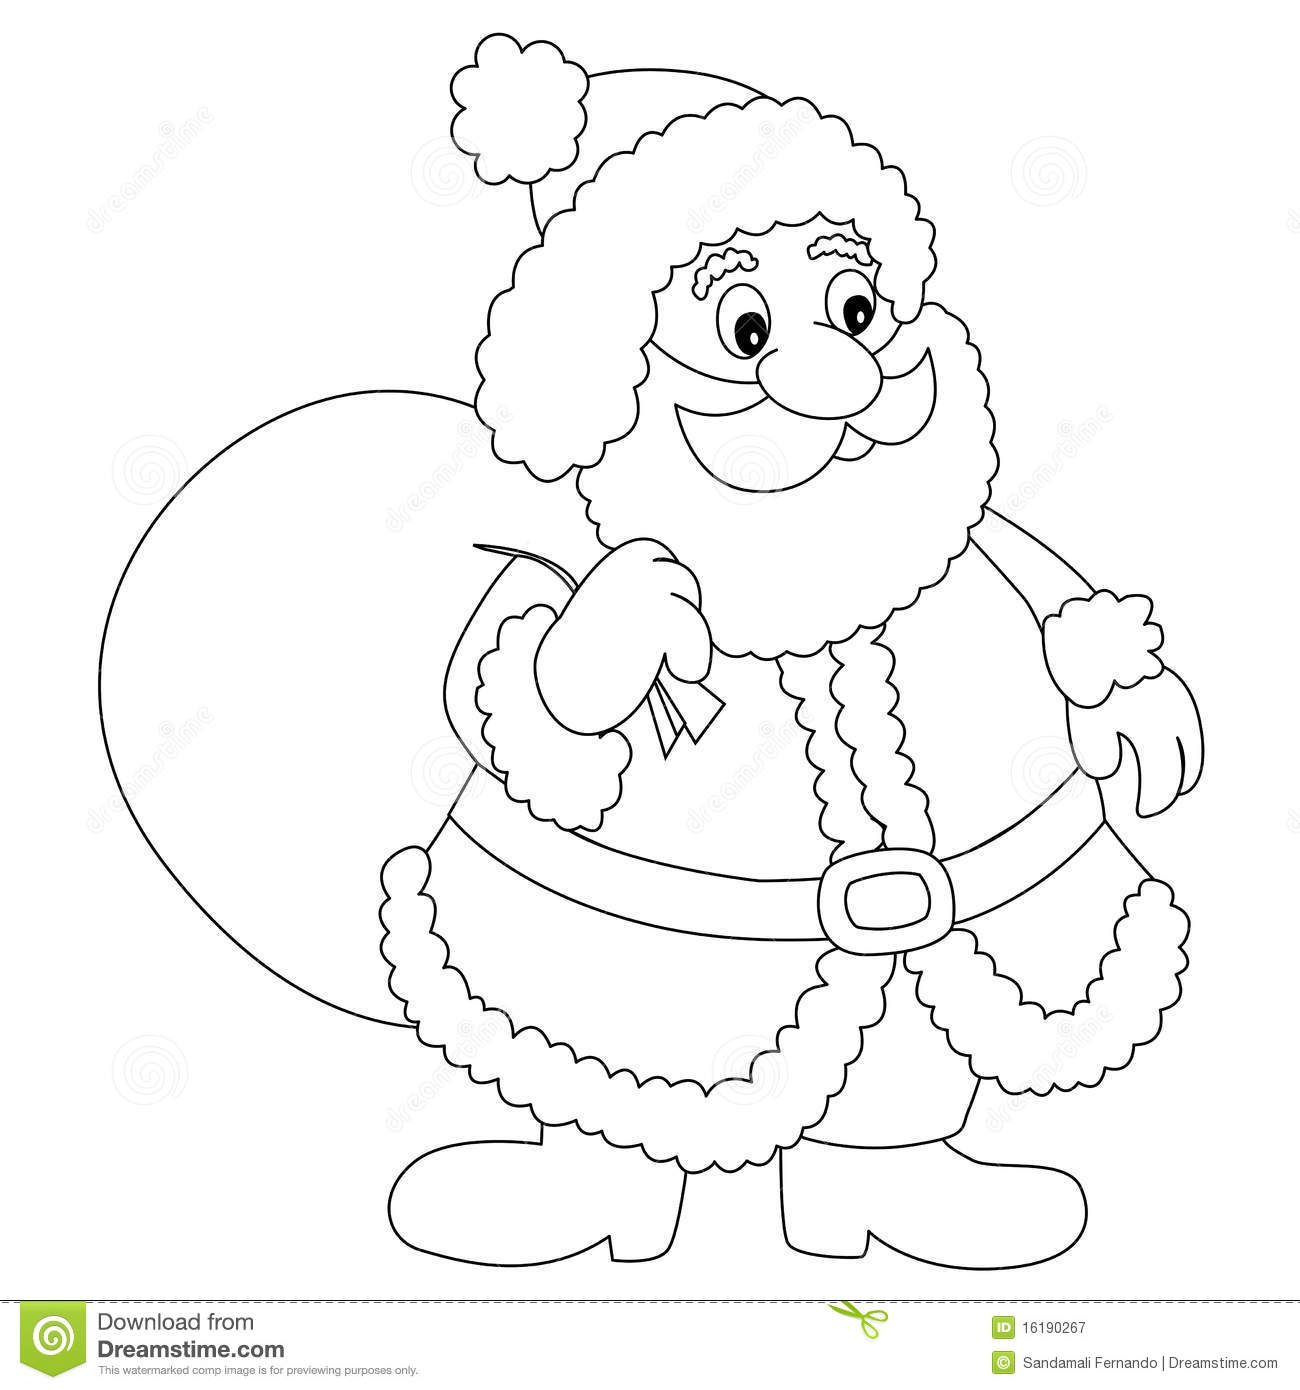 Santa Claus Illustration Clipart With Gift Bag For Coloring Books